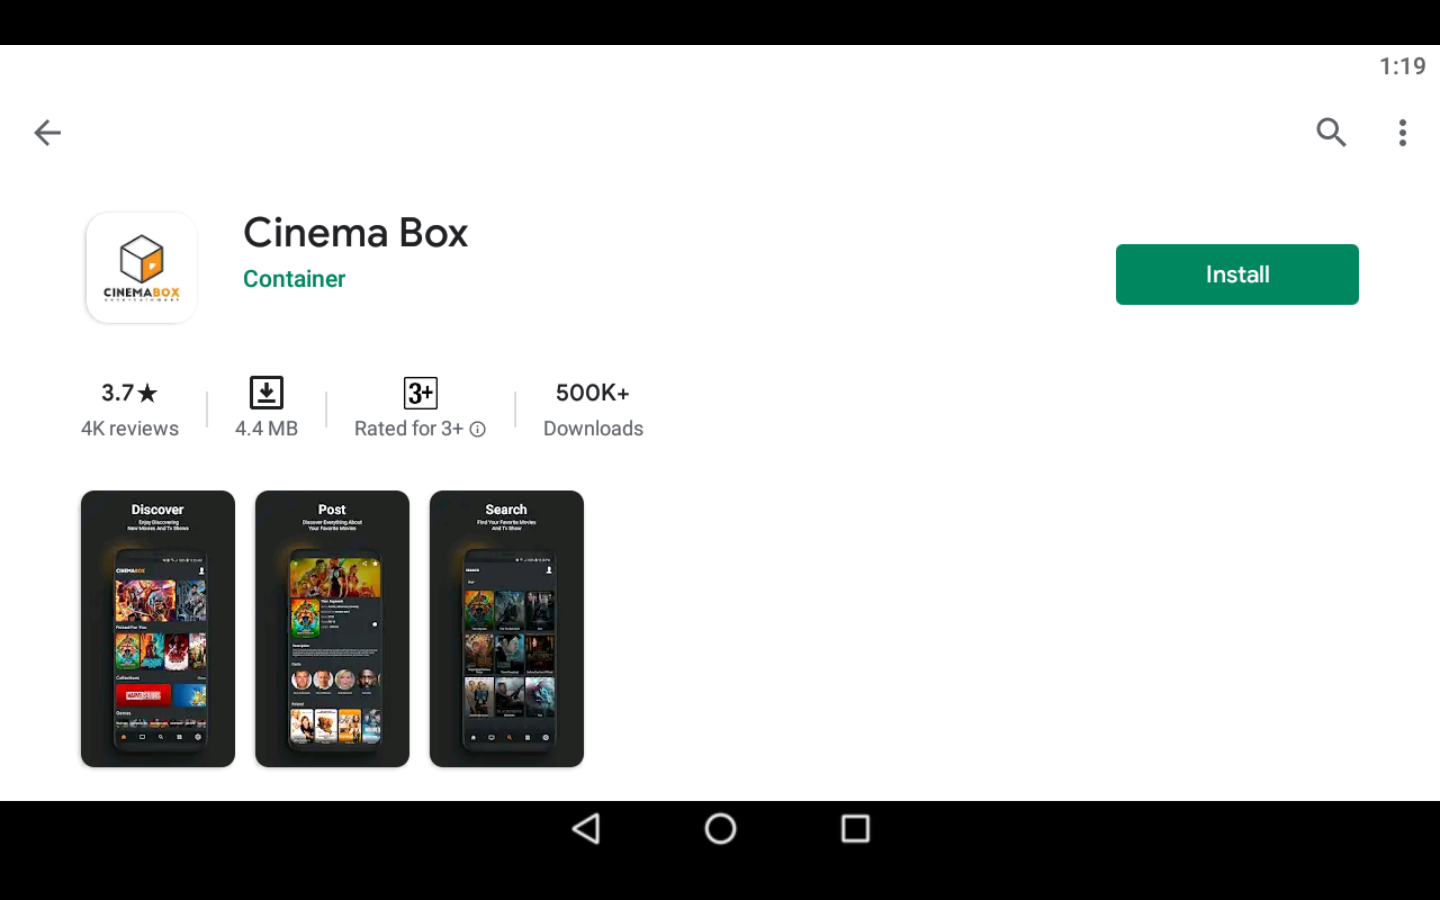 Cinema Box app on PC